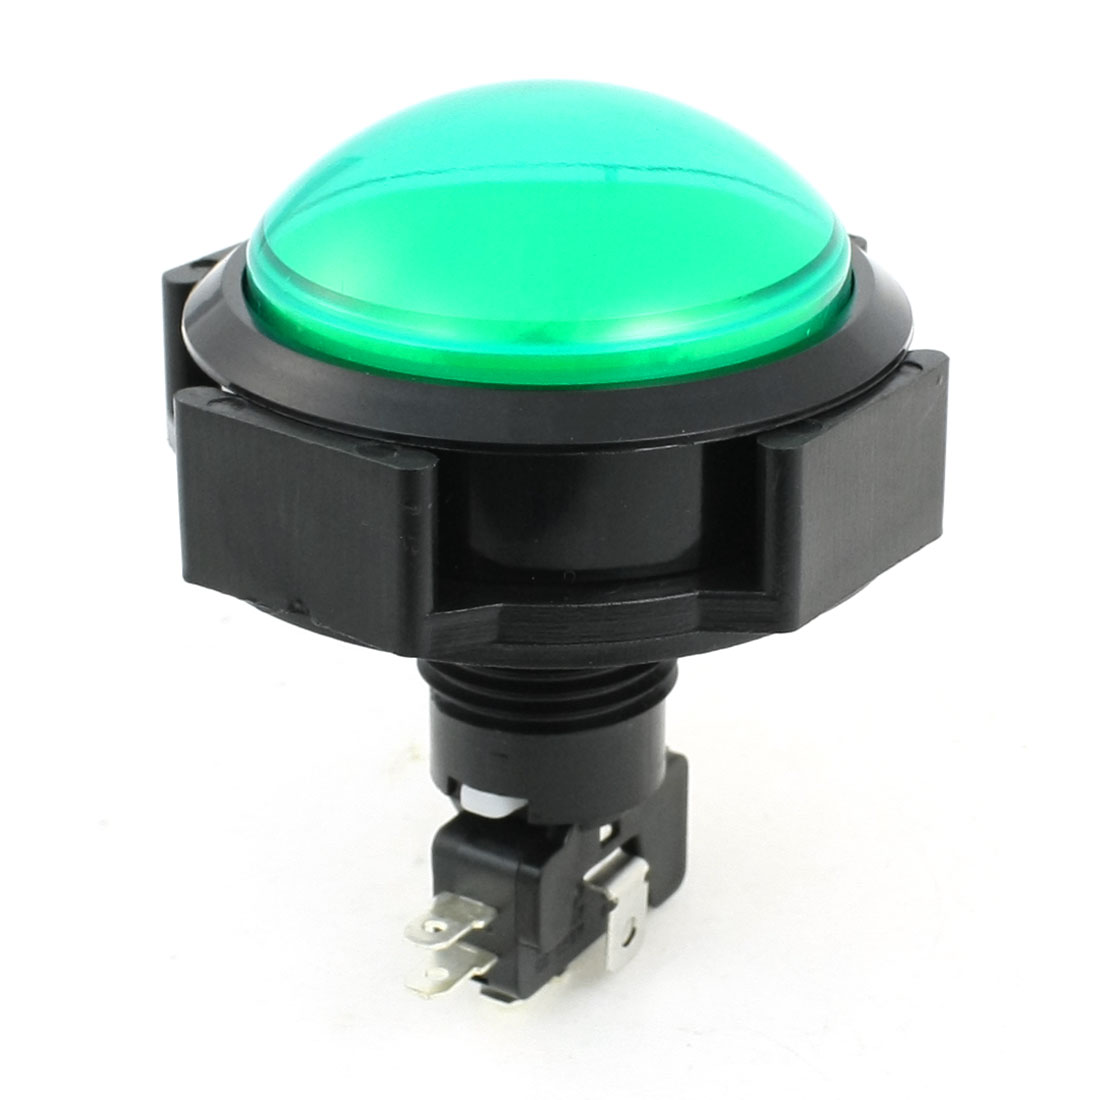 Green Pilot Lamp Momentary Round Push Button Switch for Game Machine